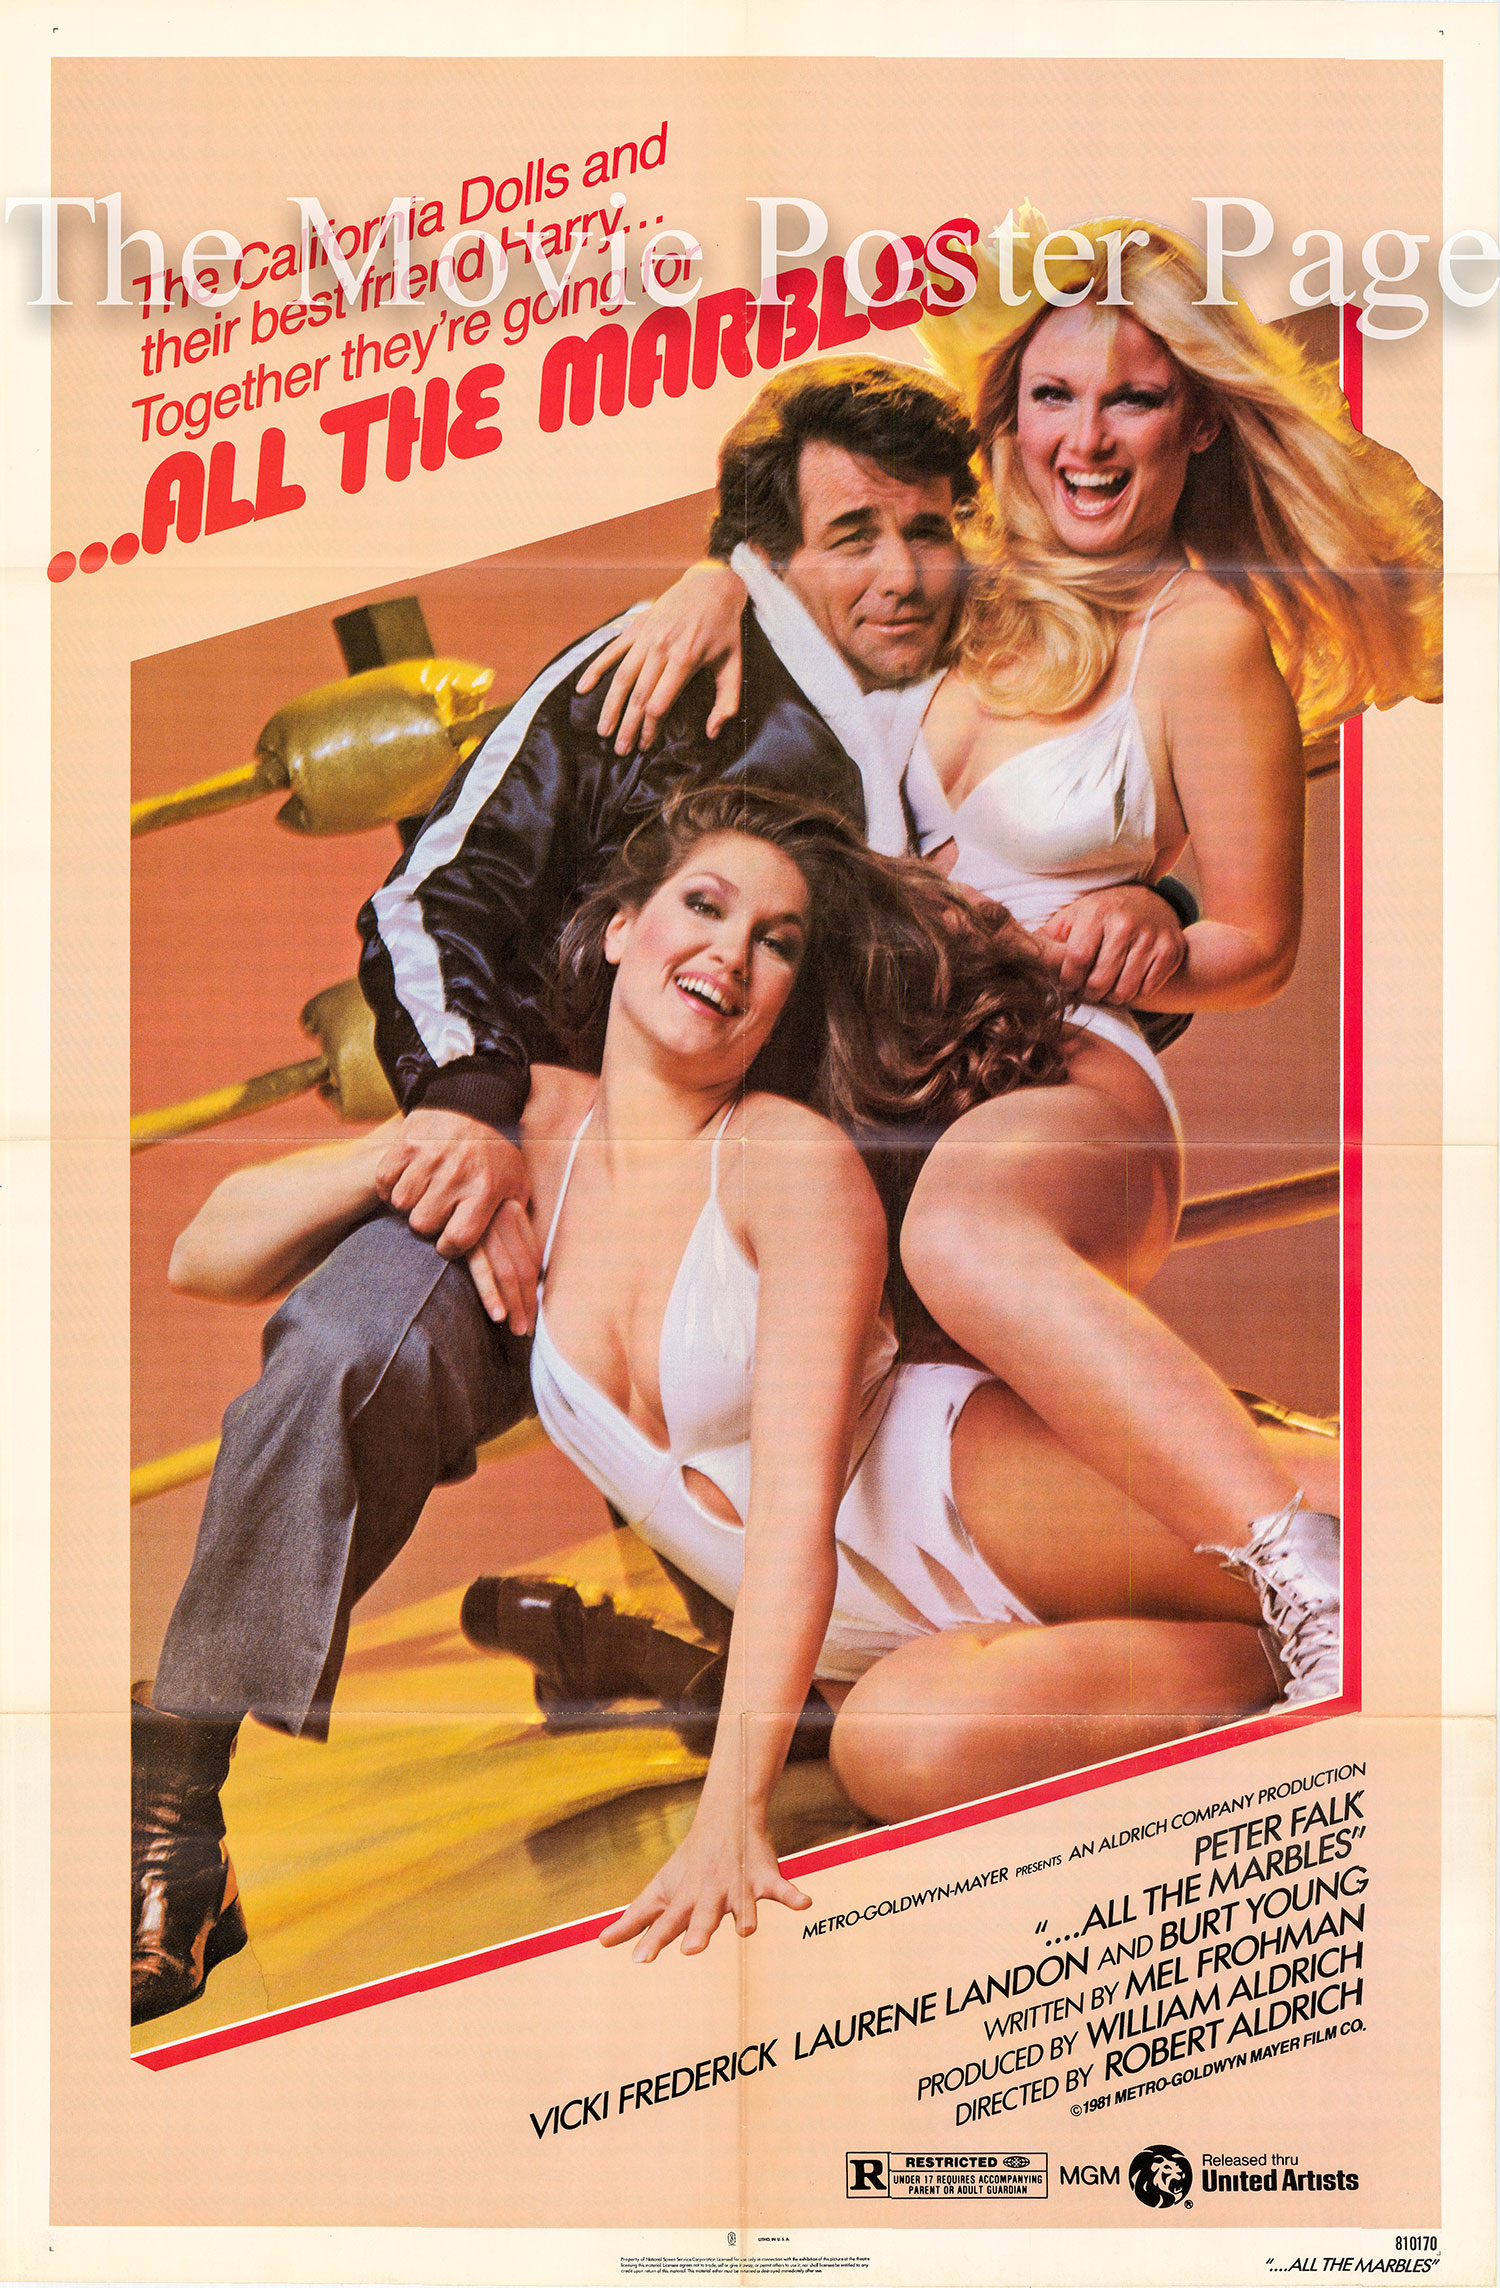 Pictured is a US one-sheet promotional poster for the 1981 Robert Aldrich film All the Marbles starring Peter Falk.